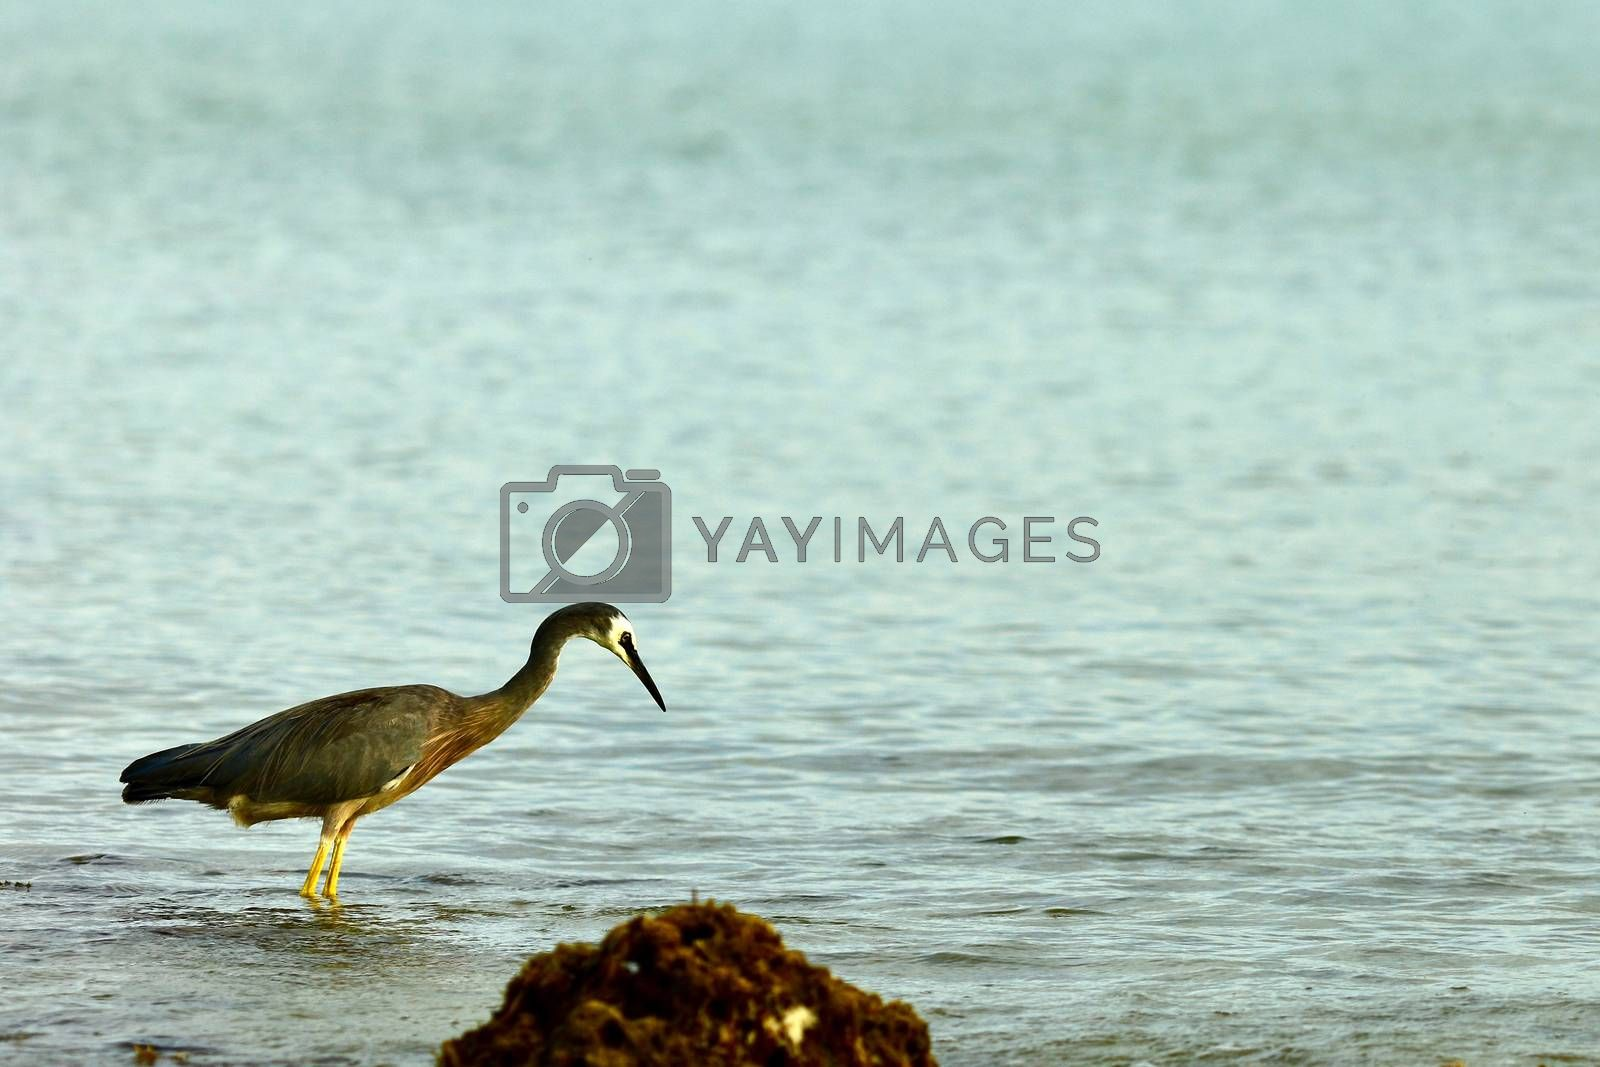 White-faced heron is a common bird throughout most of Australasia, including New Guinea, the islands of Torres Strait, Indonesia, New Zealand, and all but the driest areas of Australia.